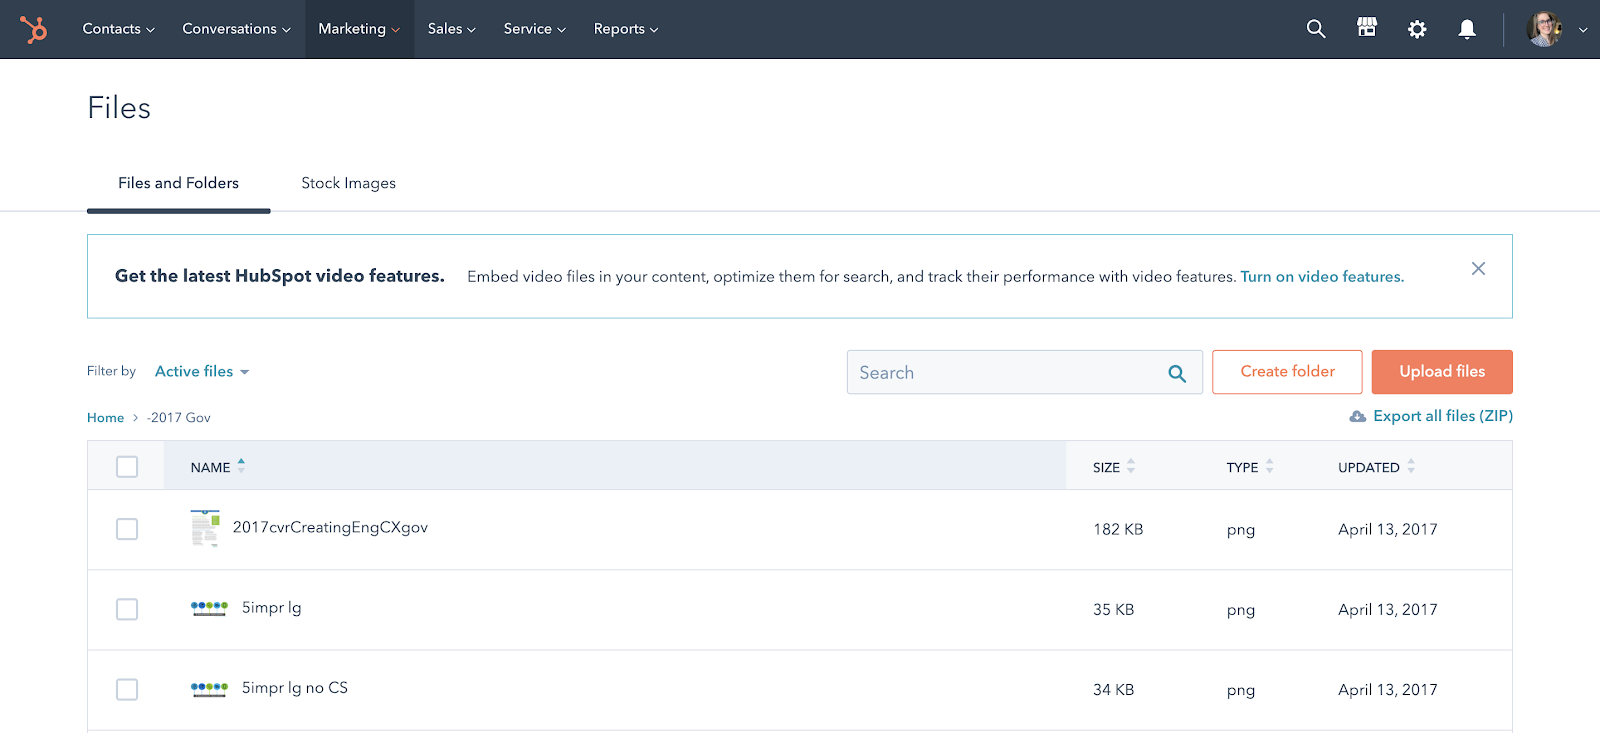 The HubSpot File Manager